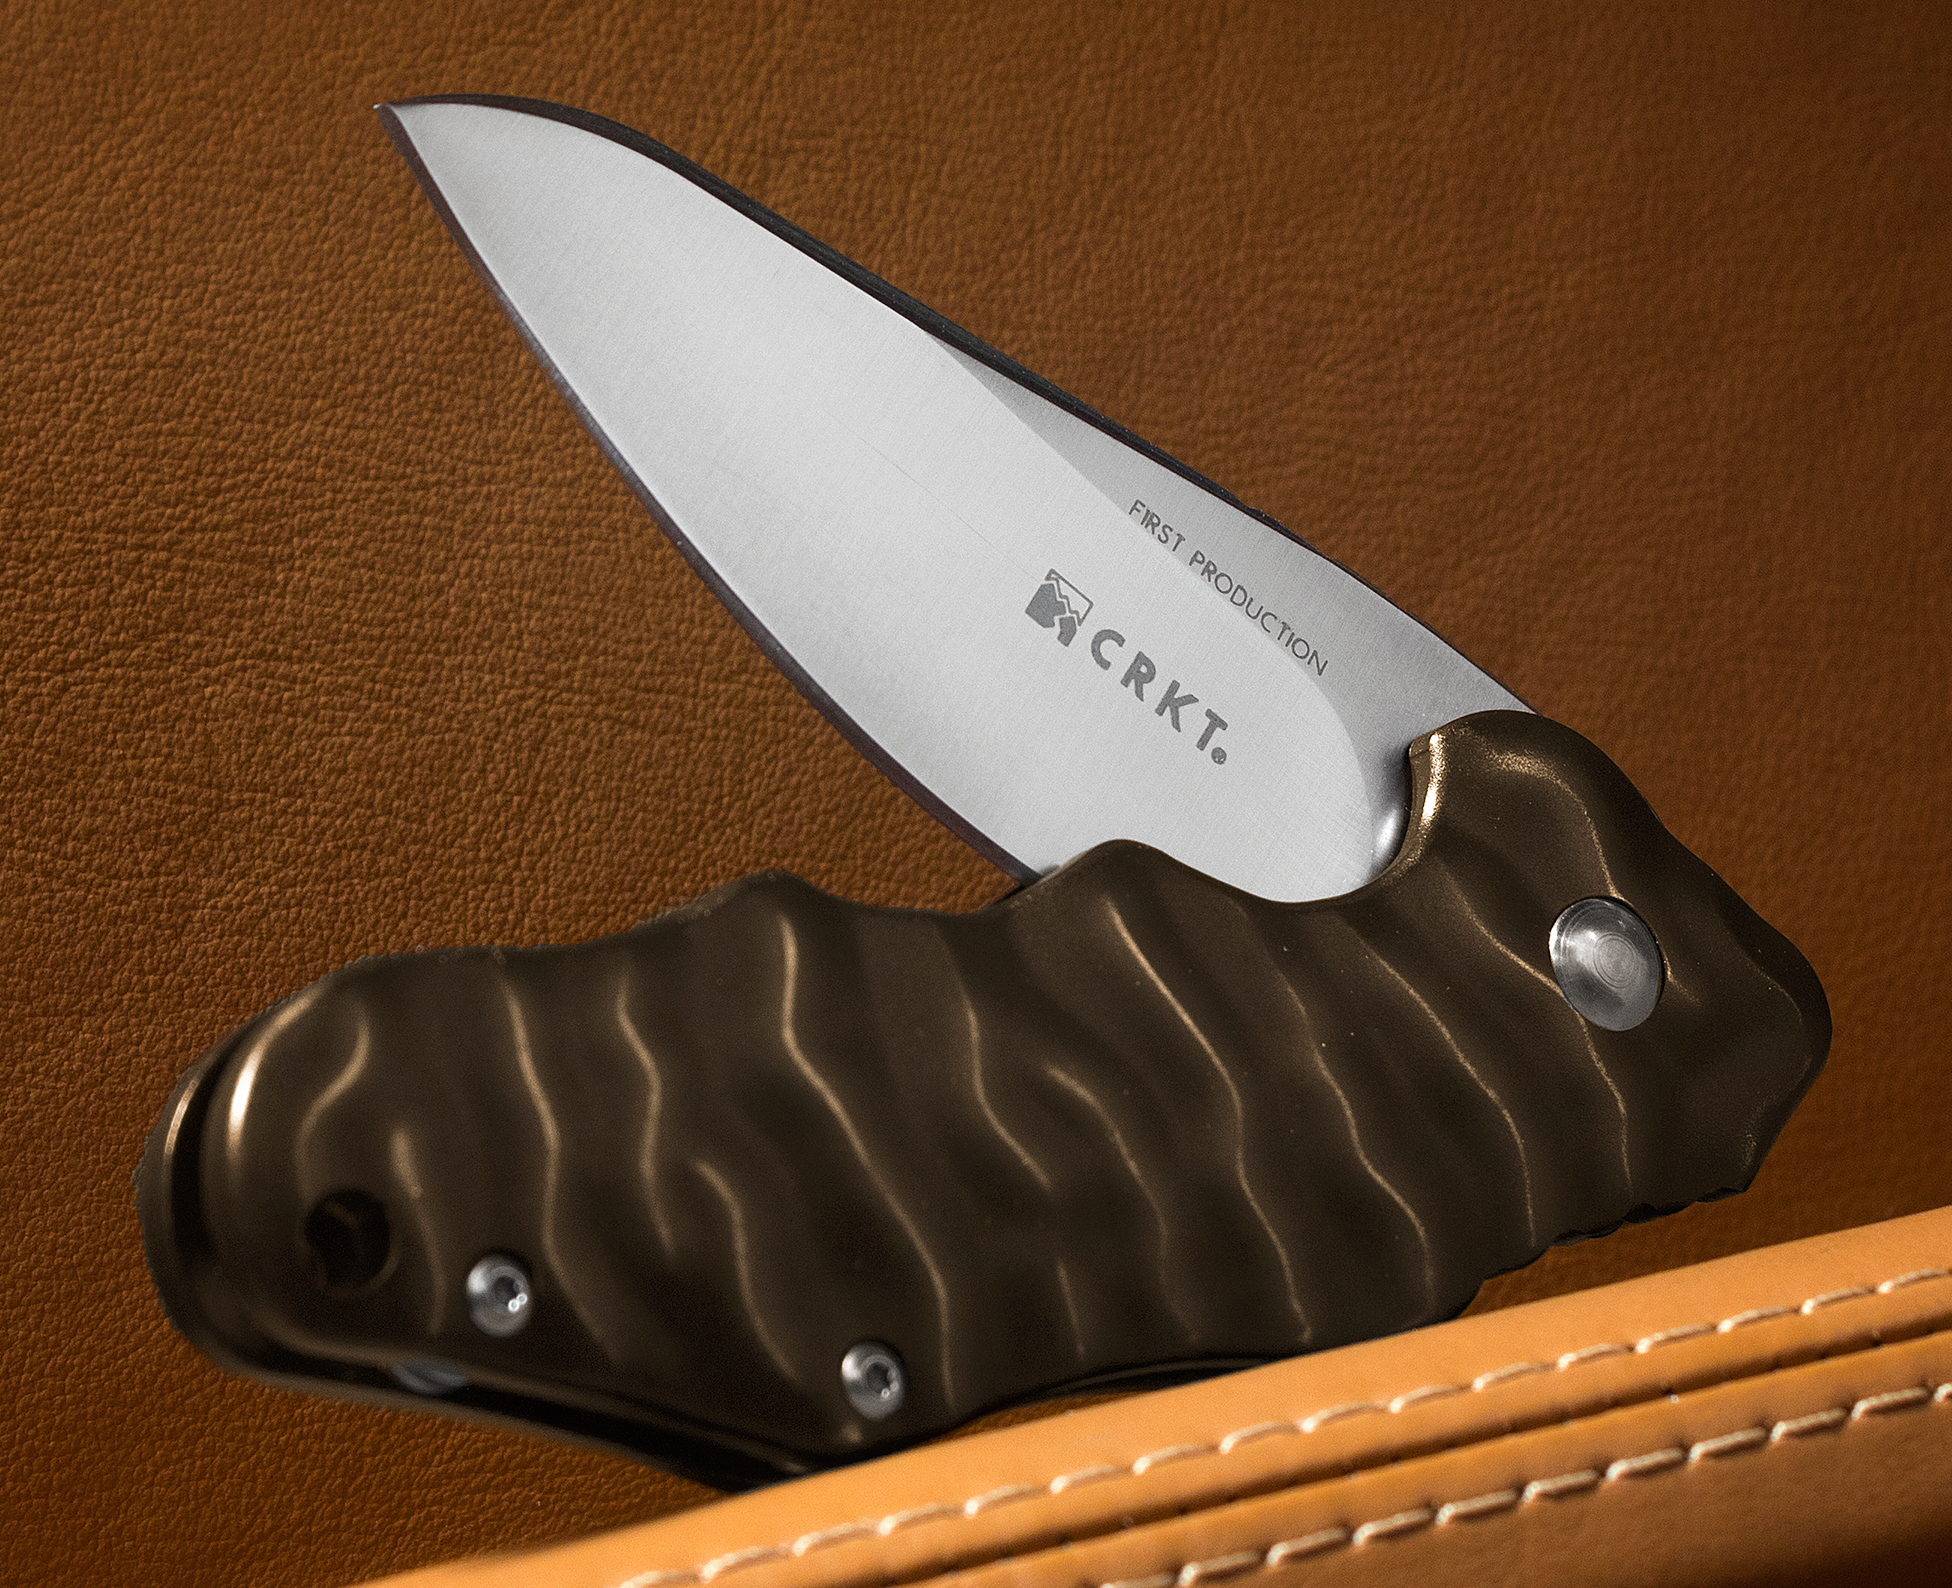 Columbia River K200BXP Ken Onion Wrinkle Flipper 2.57 inch Satin Blade, Brown Aluminum Handles